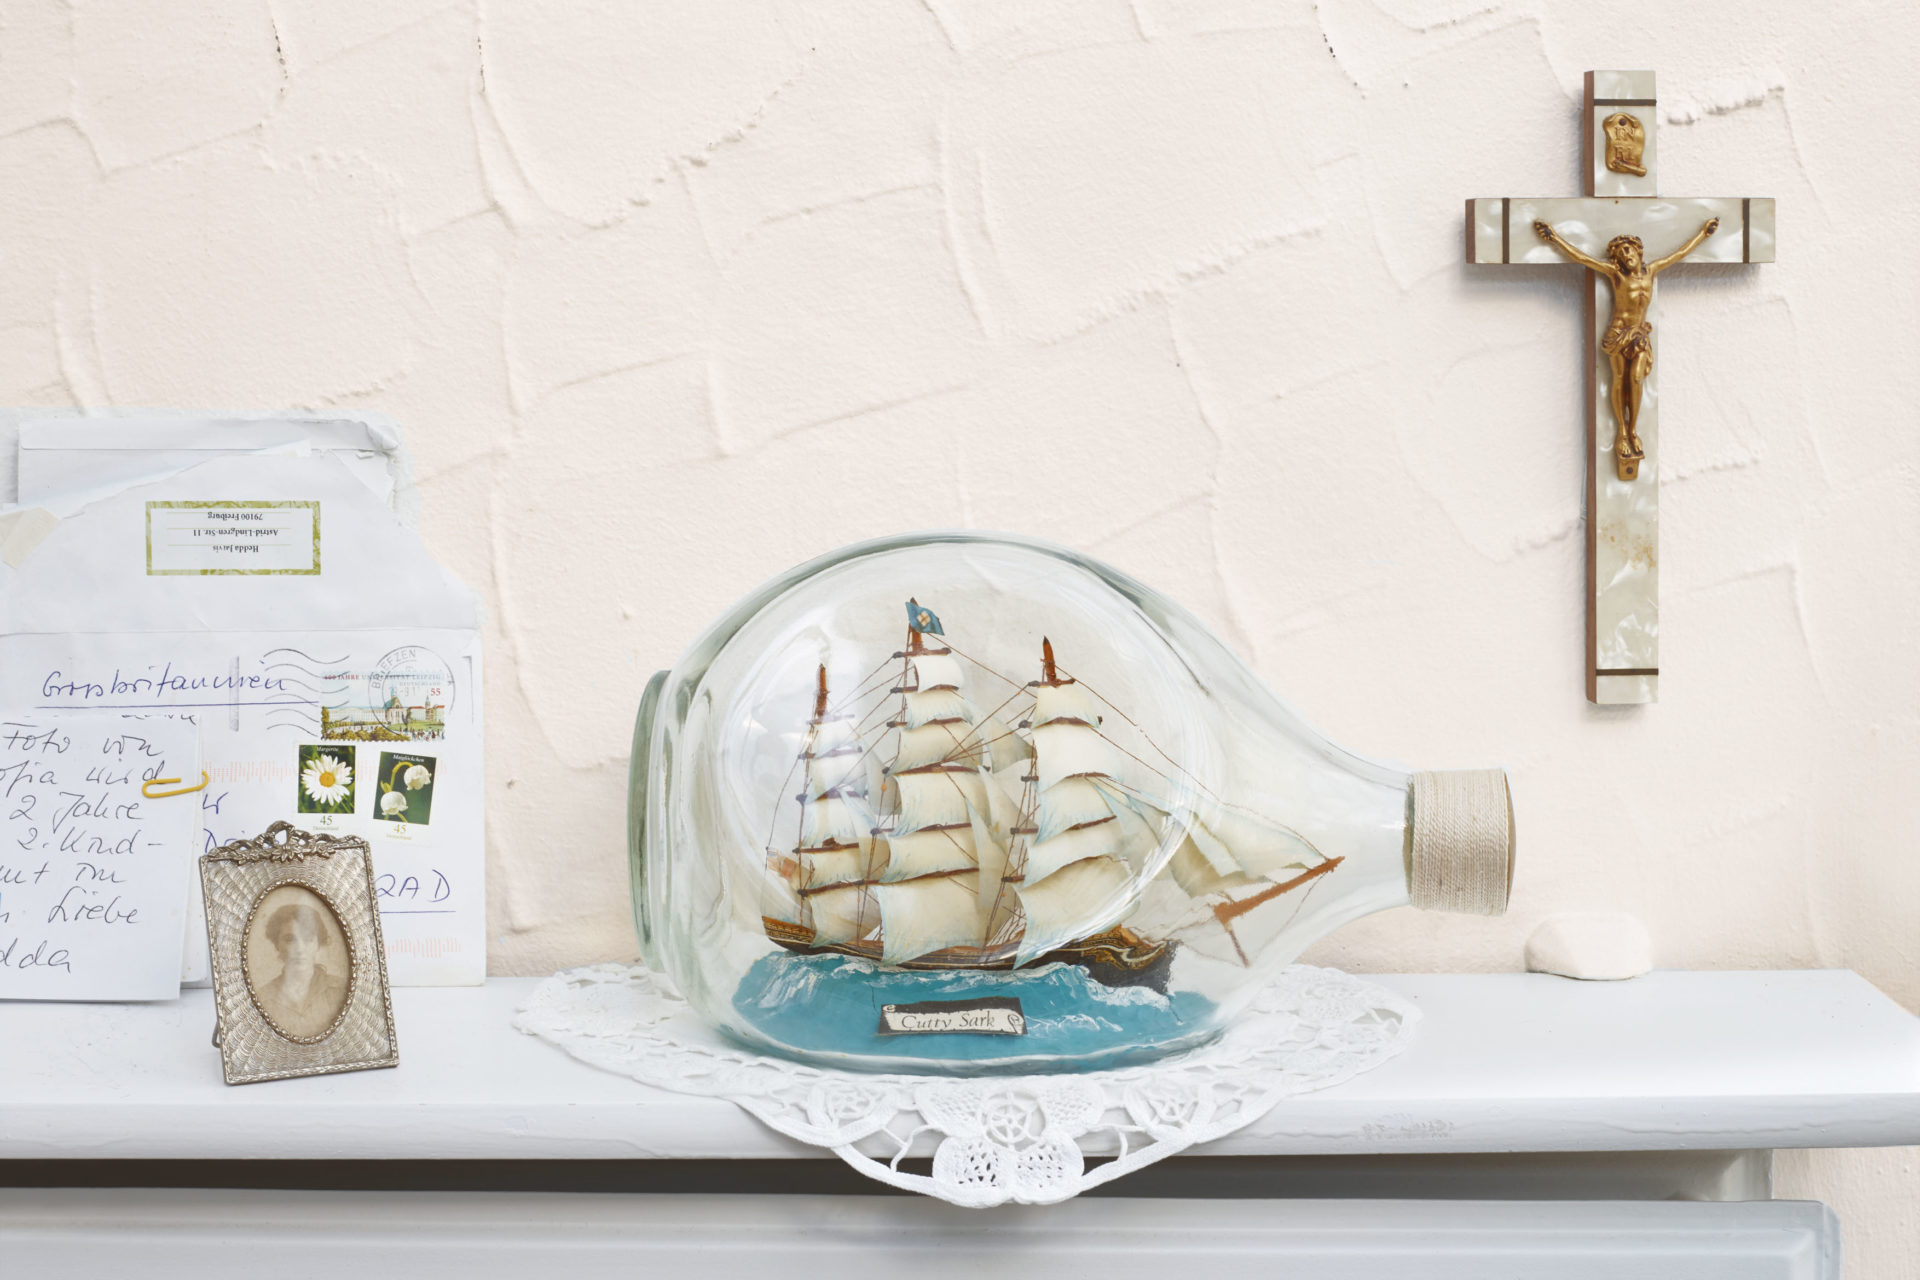 Ship in a bottle on a shelf with crucifix – Shaw & Shaw Photography campaign – Shaw and Shaw advertising photographers